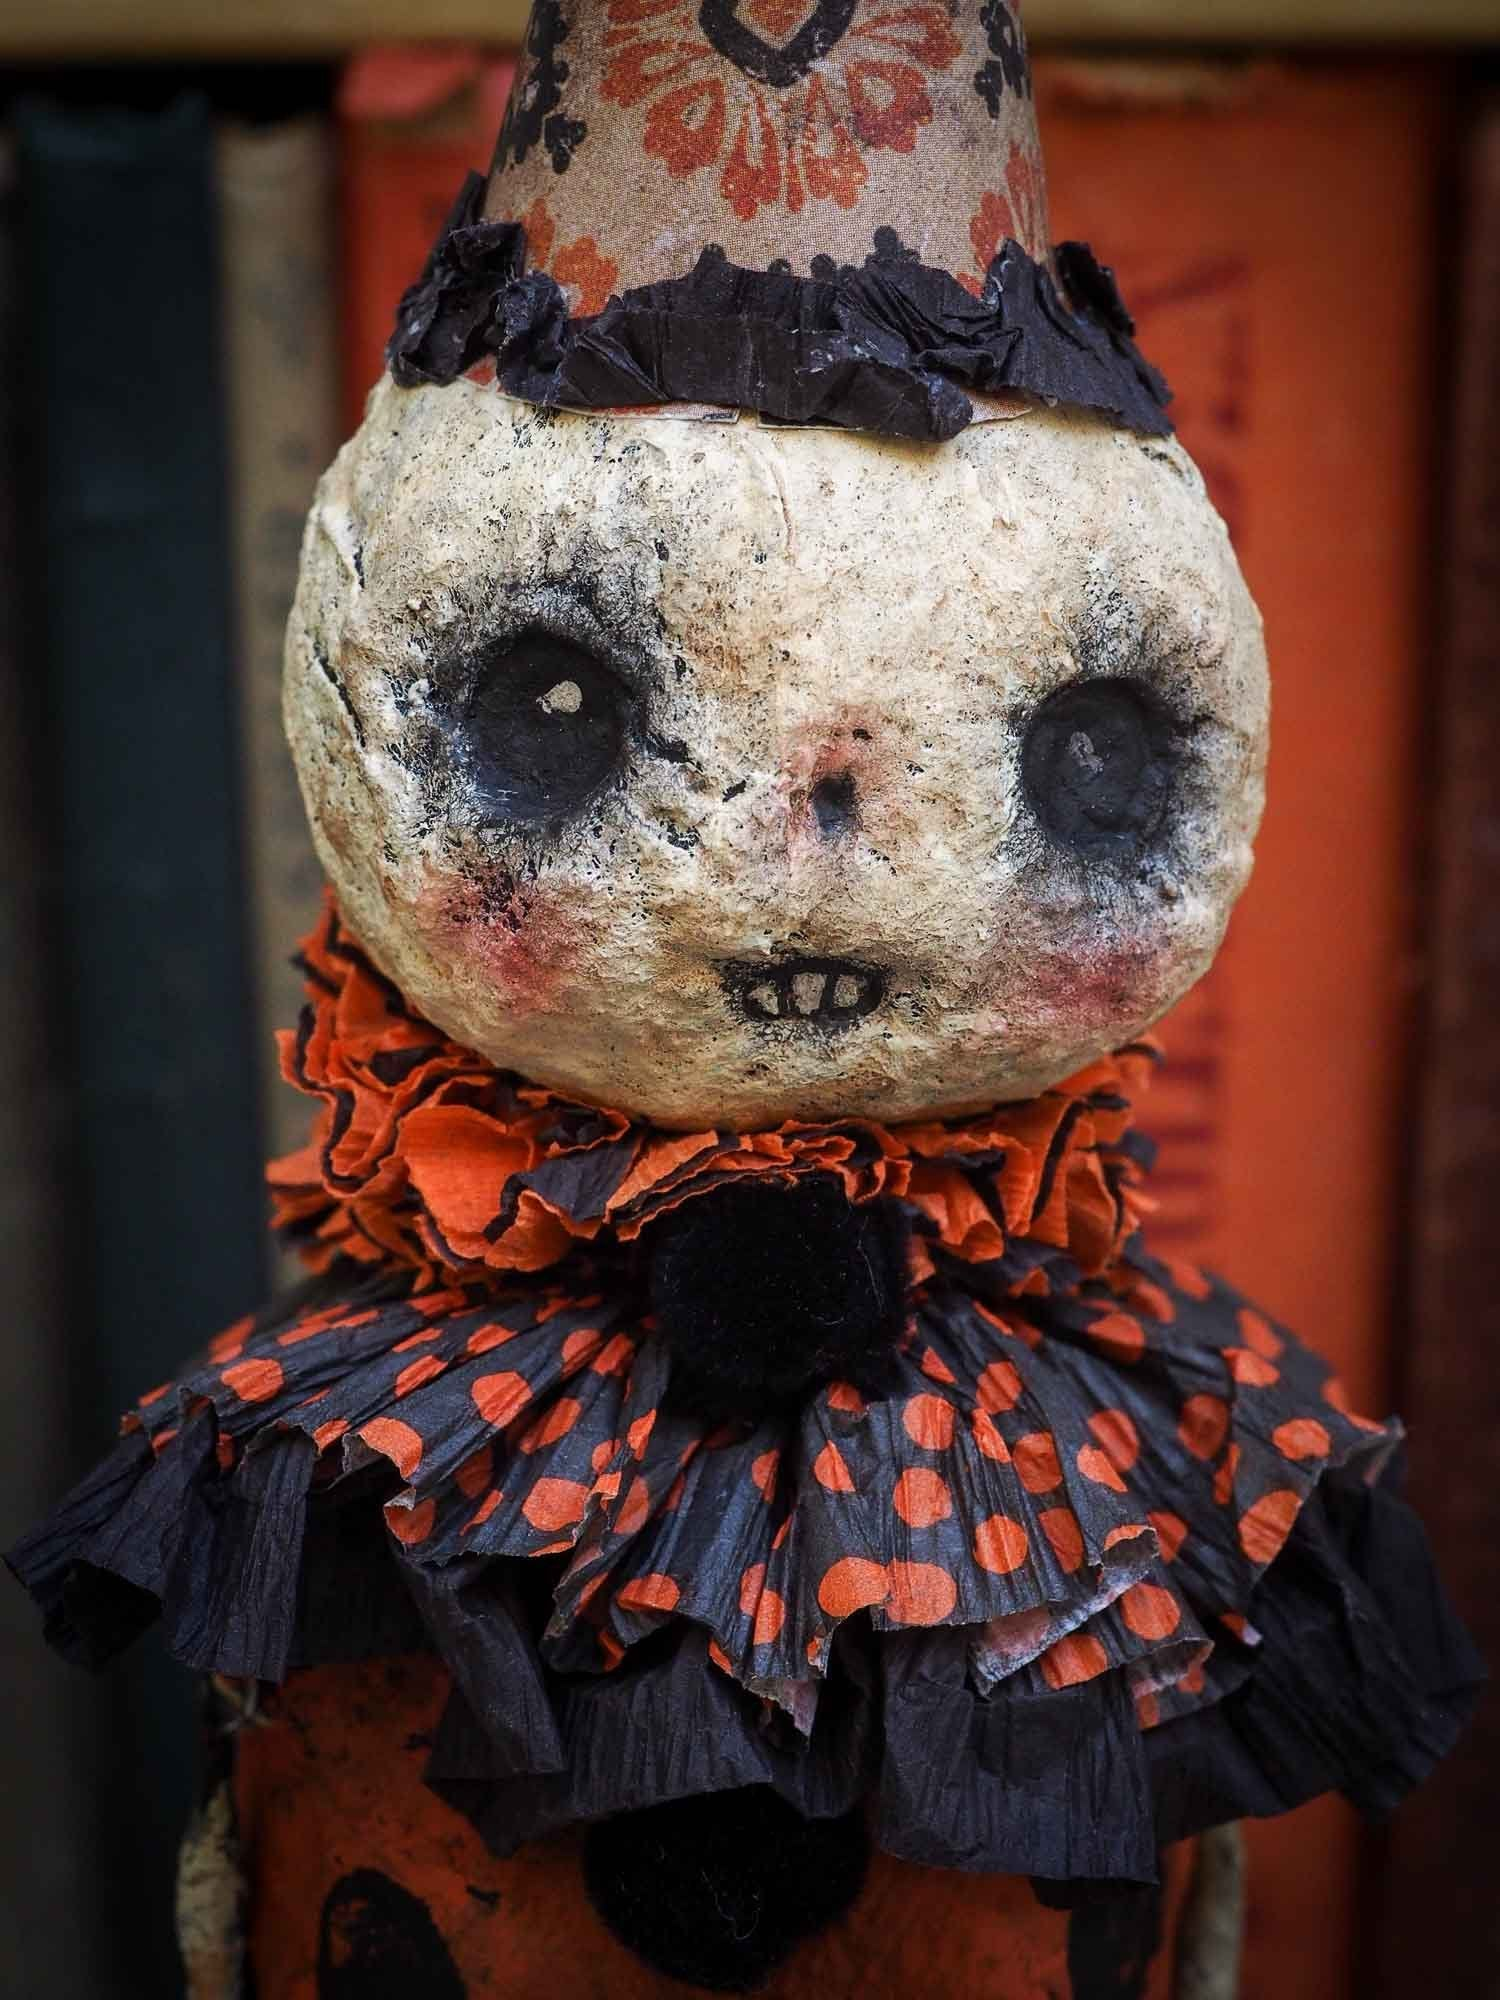 A Halloween carol is Danita's version of the tale of the three ghosts in A Christmas carol. Danita made handmade art dolls in spun cotton using ghouls, jack-o-lanterns, skeleton, witches, ghosts and more to create a visually inspiring set collection of Handmade dolls to create a beautiful Halloween story and home decor decoration.